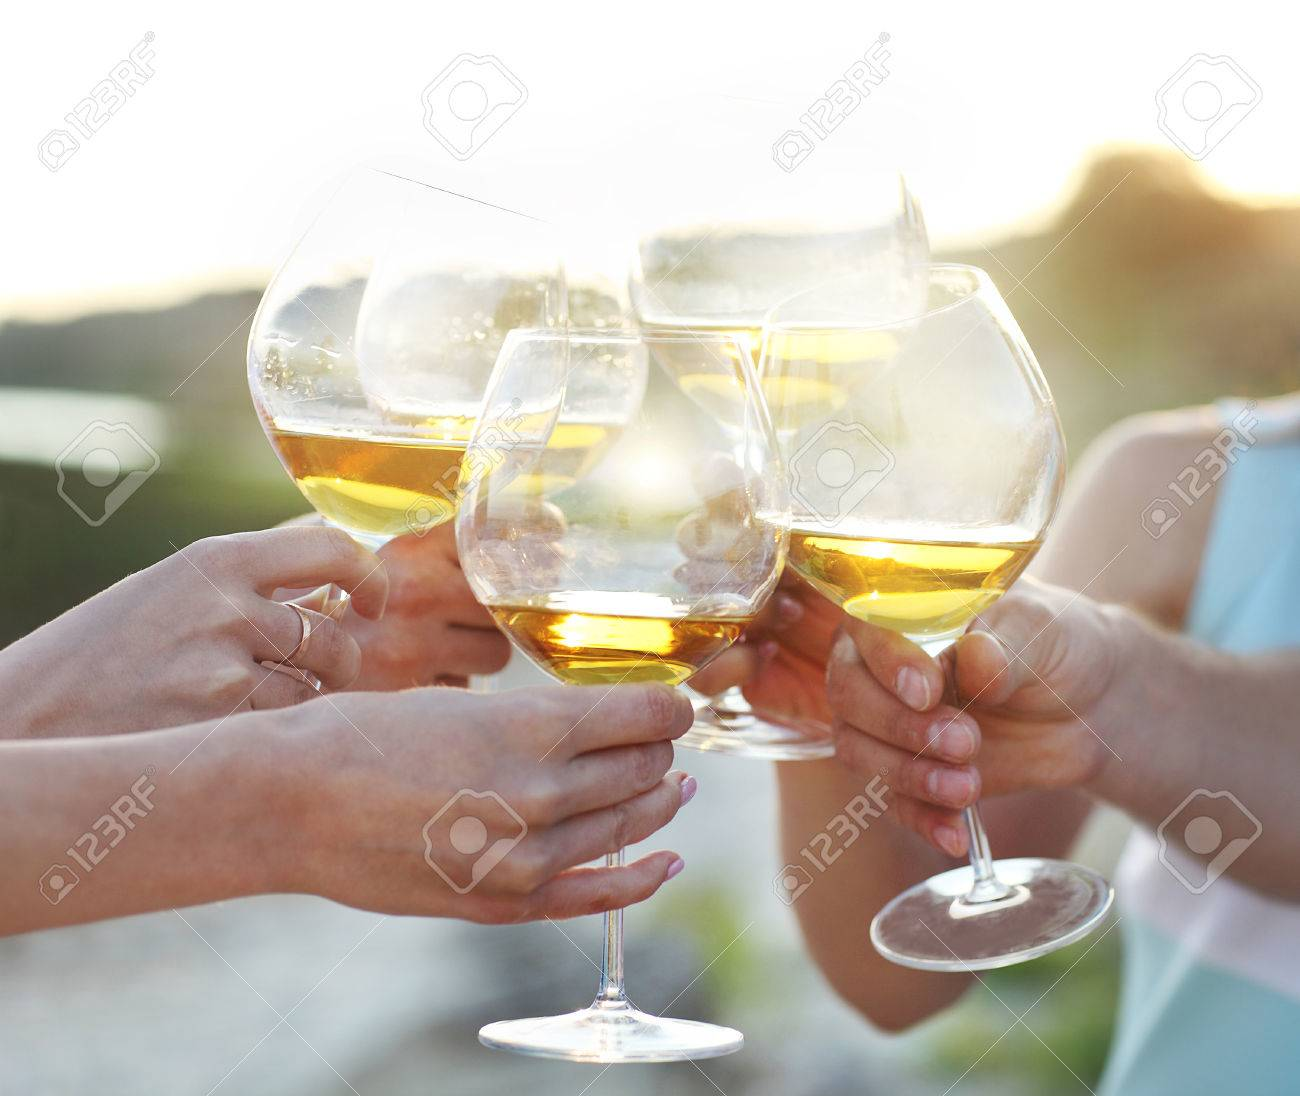 Celebration. People holding glasses of red wine making a toast - 43555333